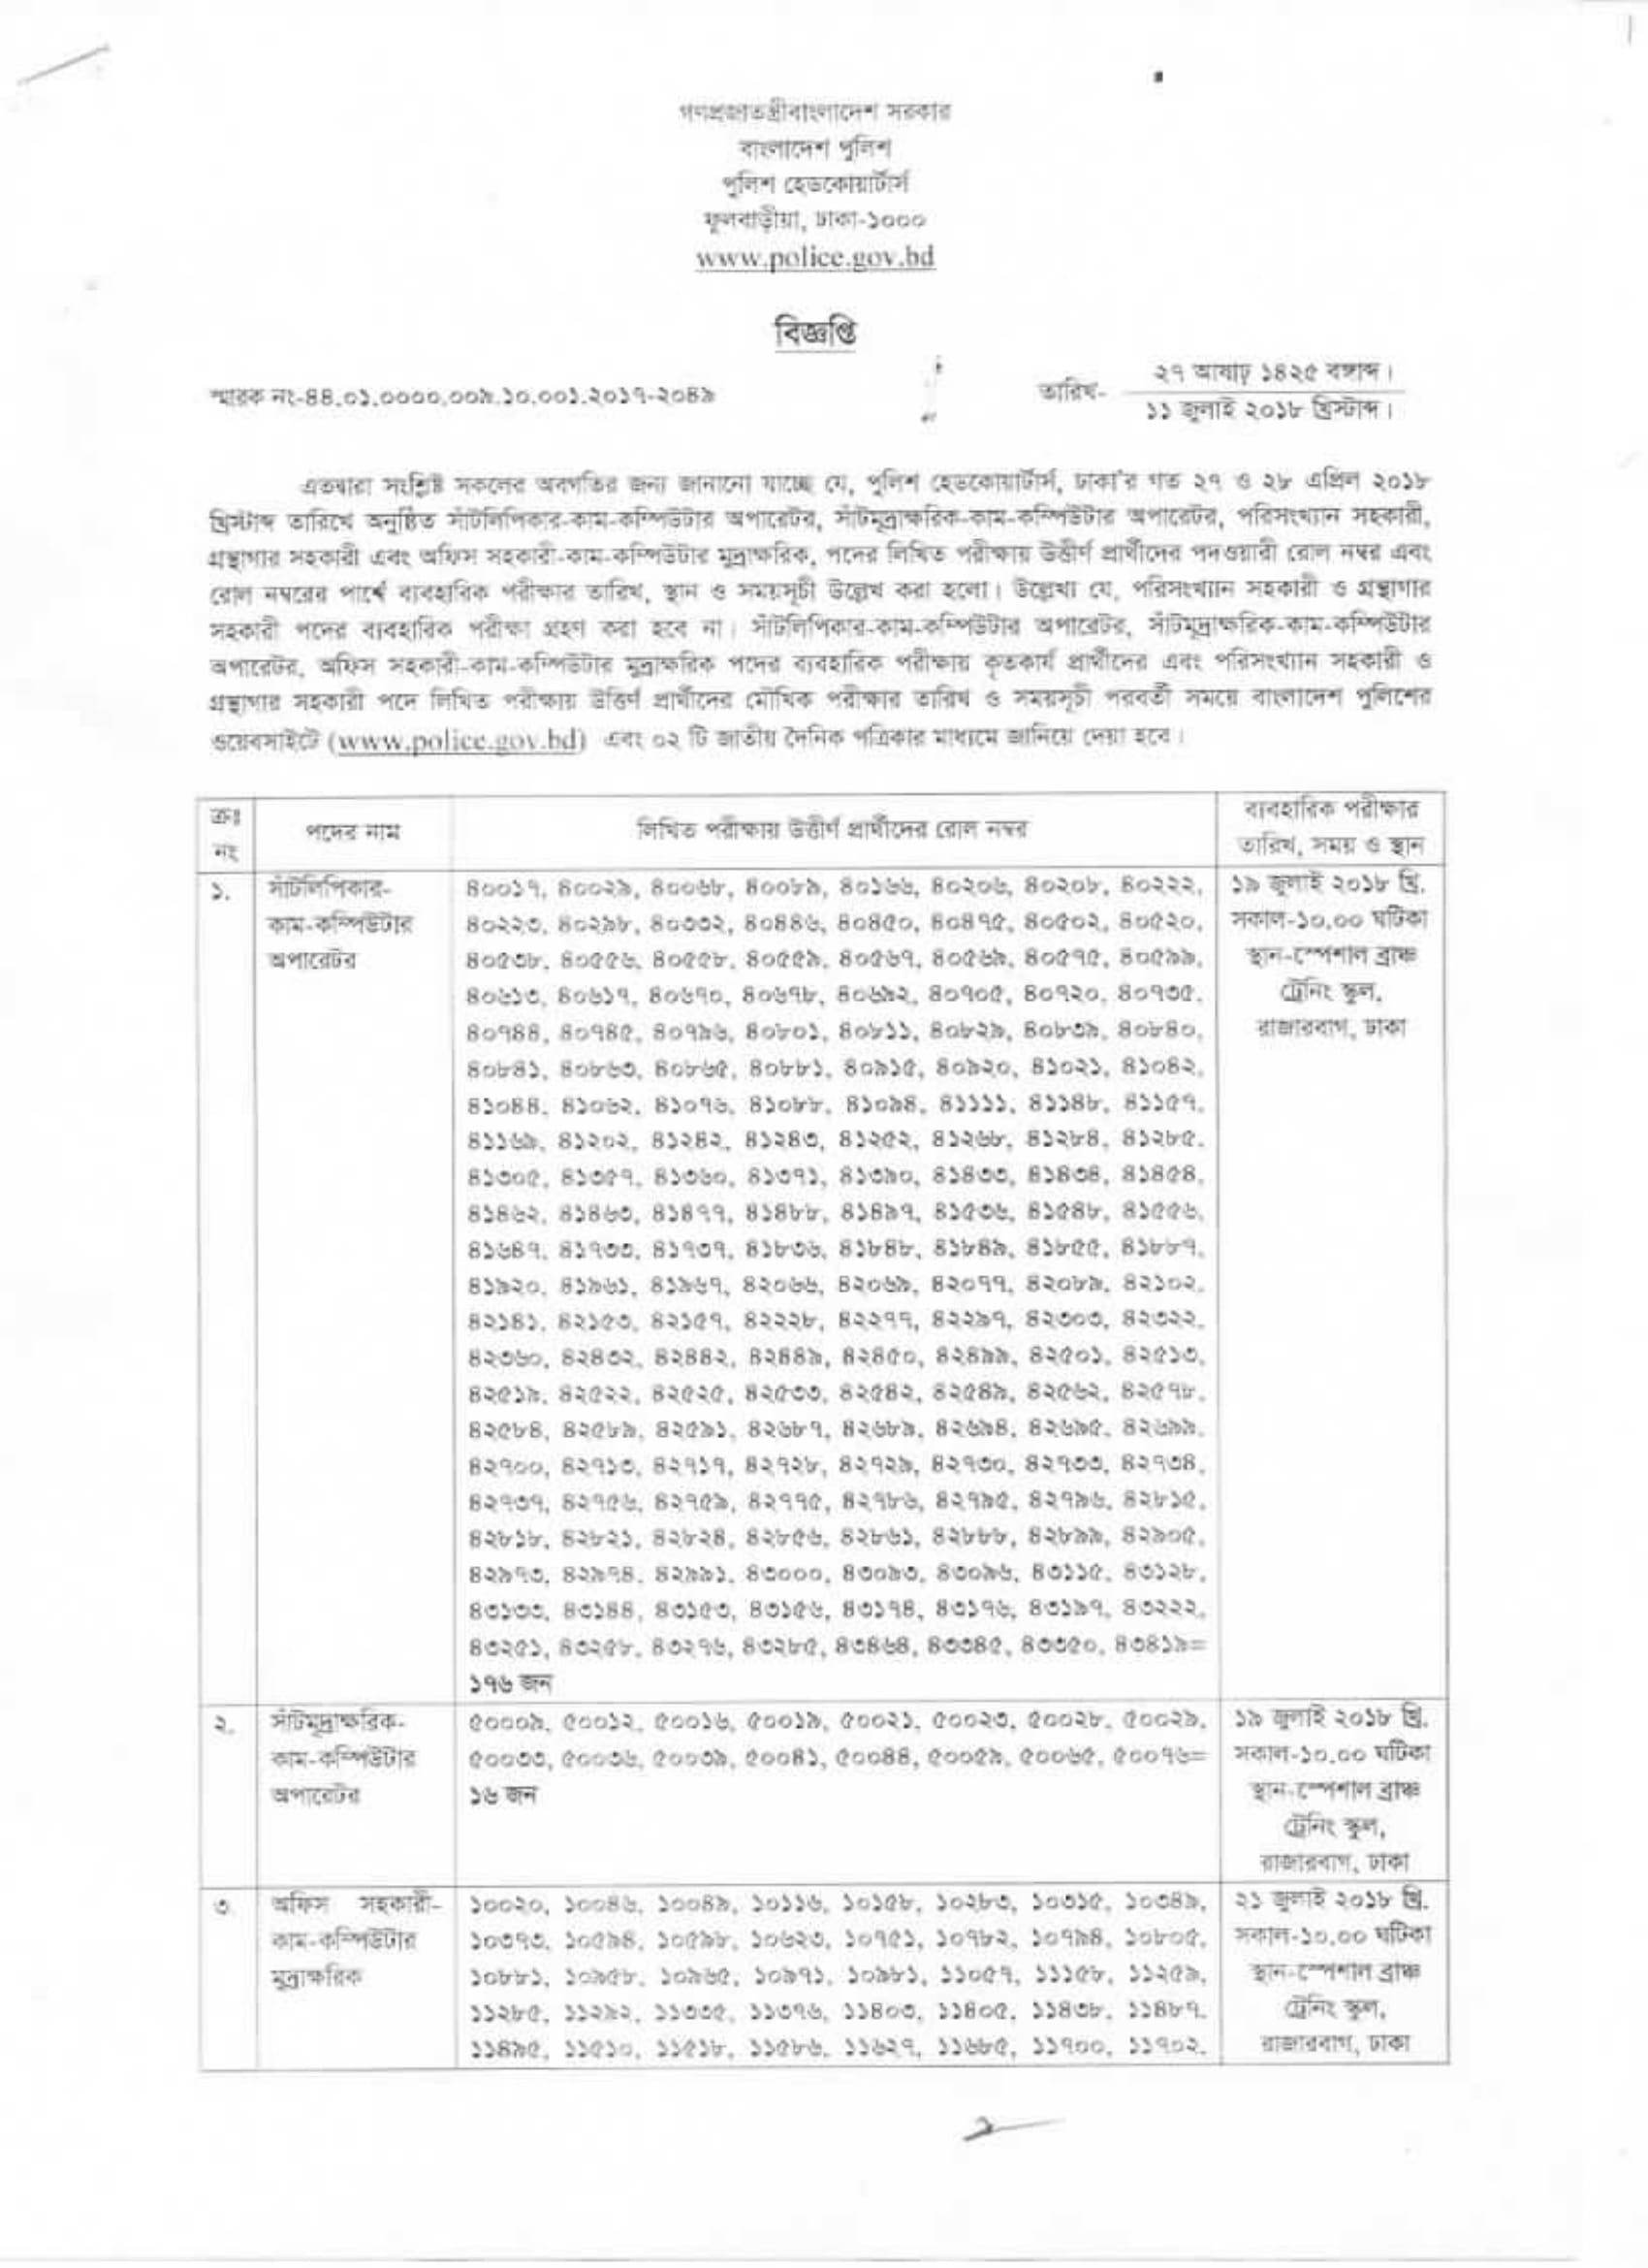 Bangladesh Police Exam Result & Notice - dpe gov bd